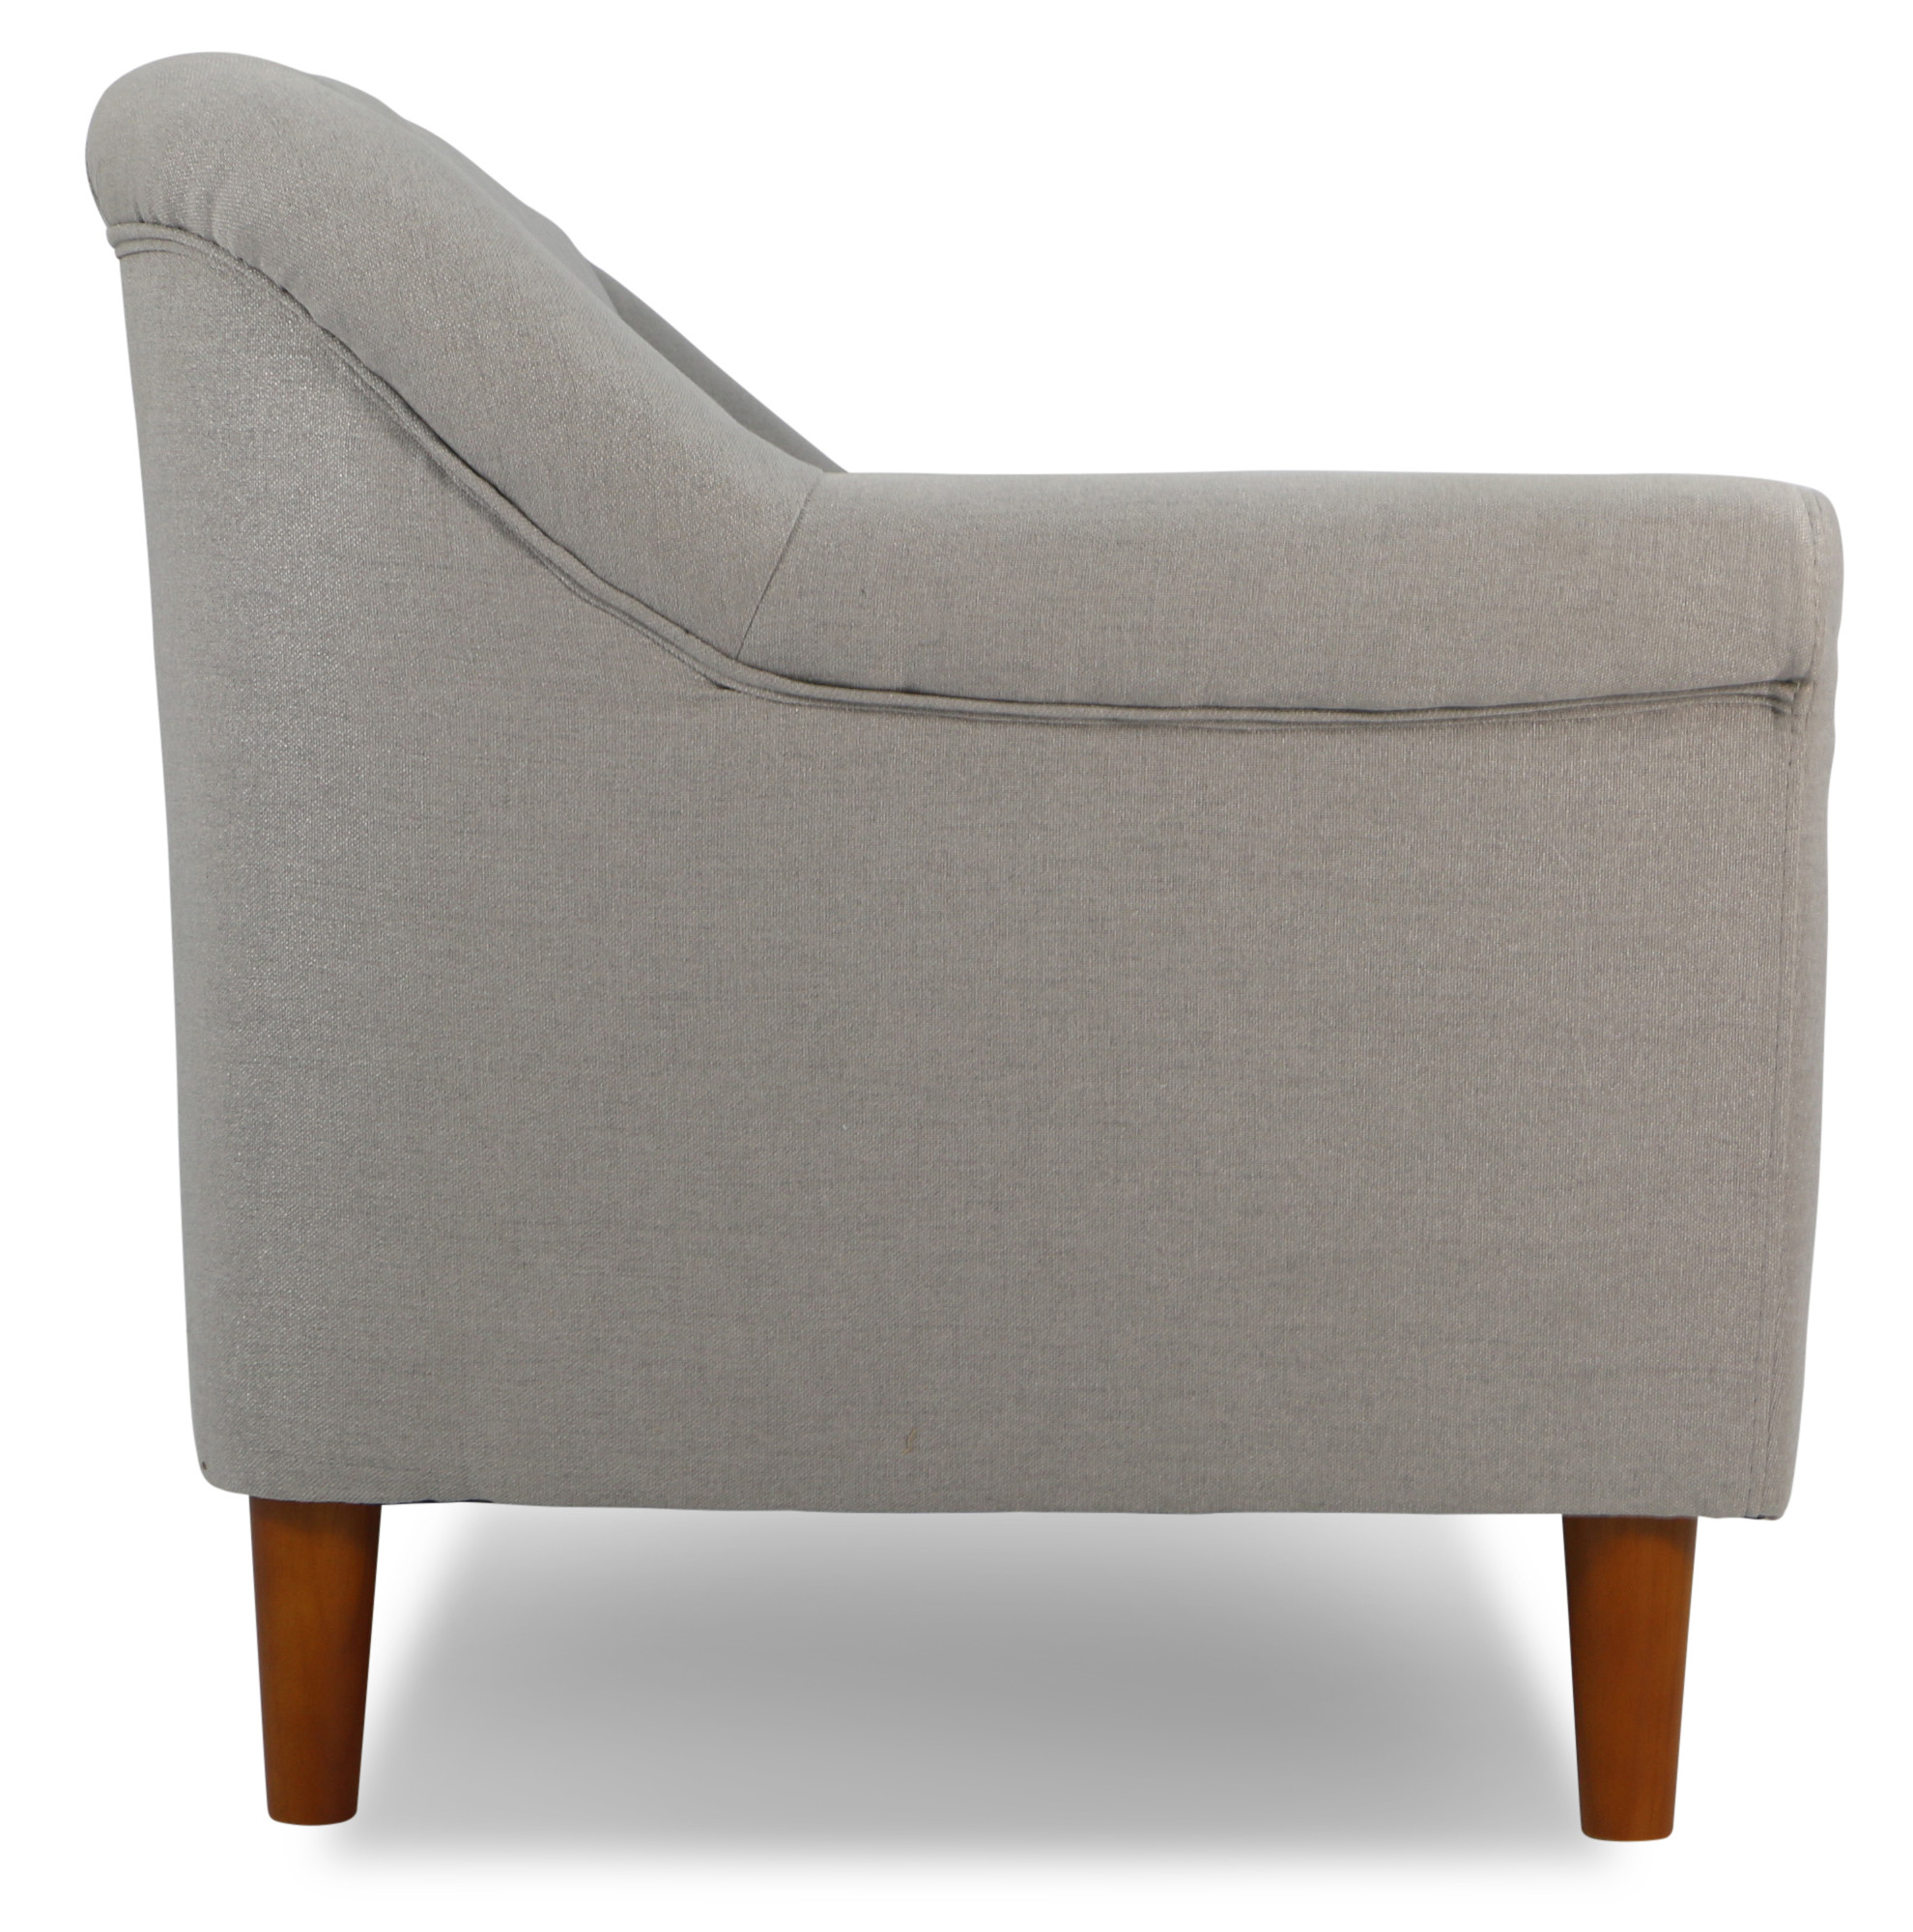 of futon loveseat coverikea ektorp size sofaikea outuch s frightening couch pull pictures full outh inspirations ikea macy sleeper sofa